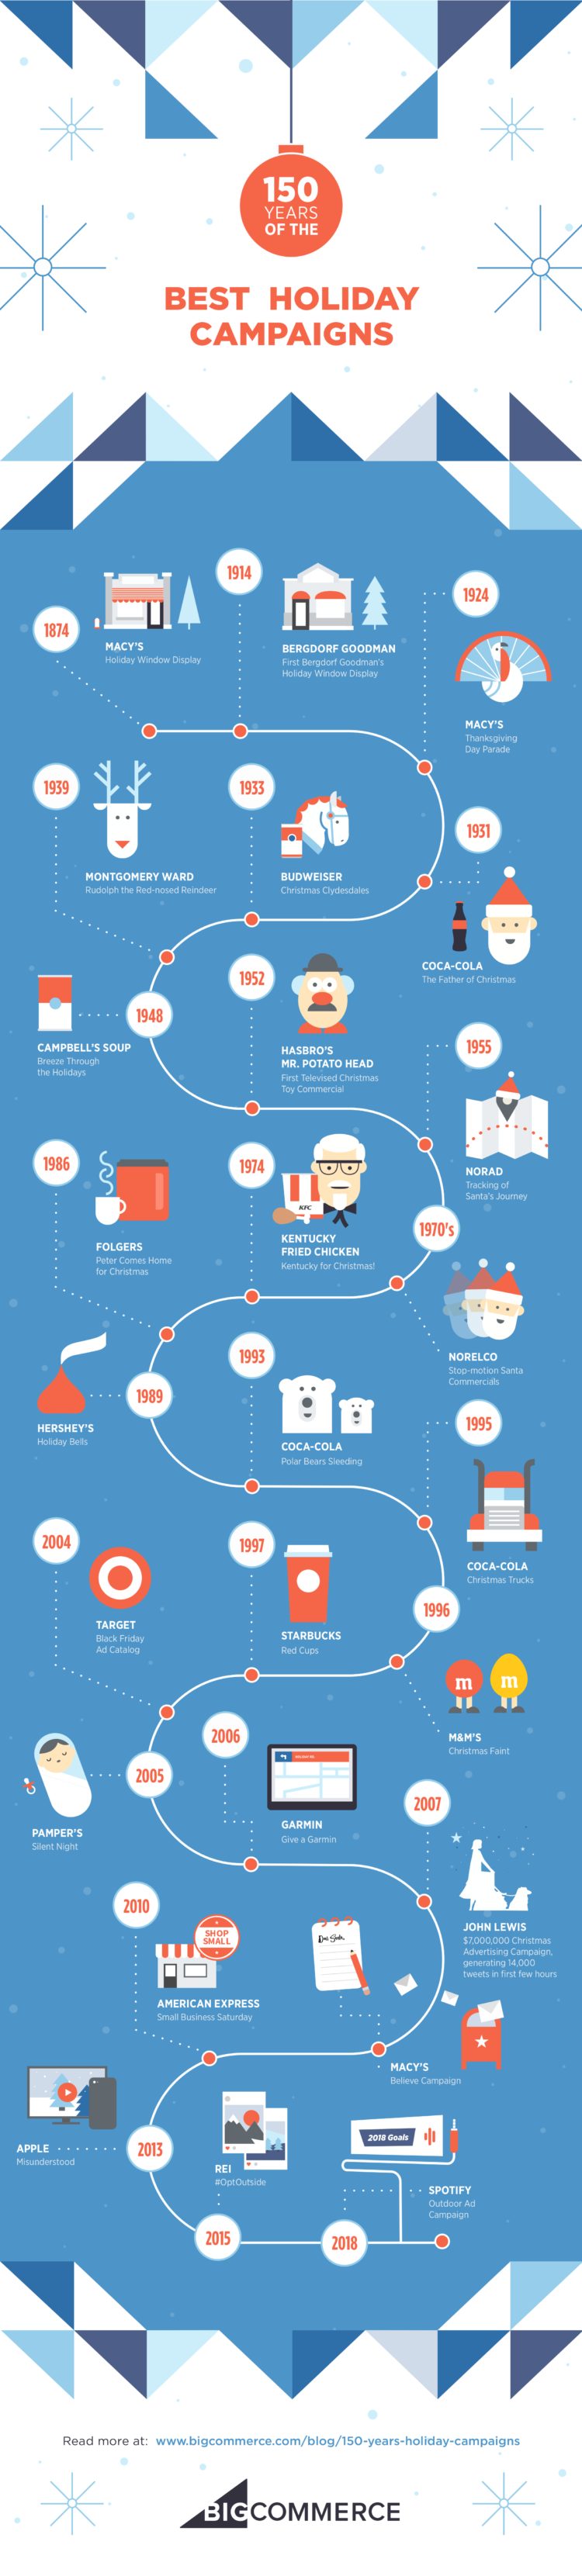 150 Years Best Holiday Campaigns Infographic